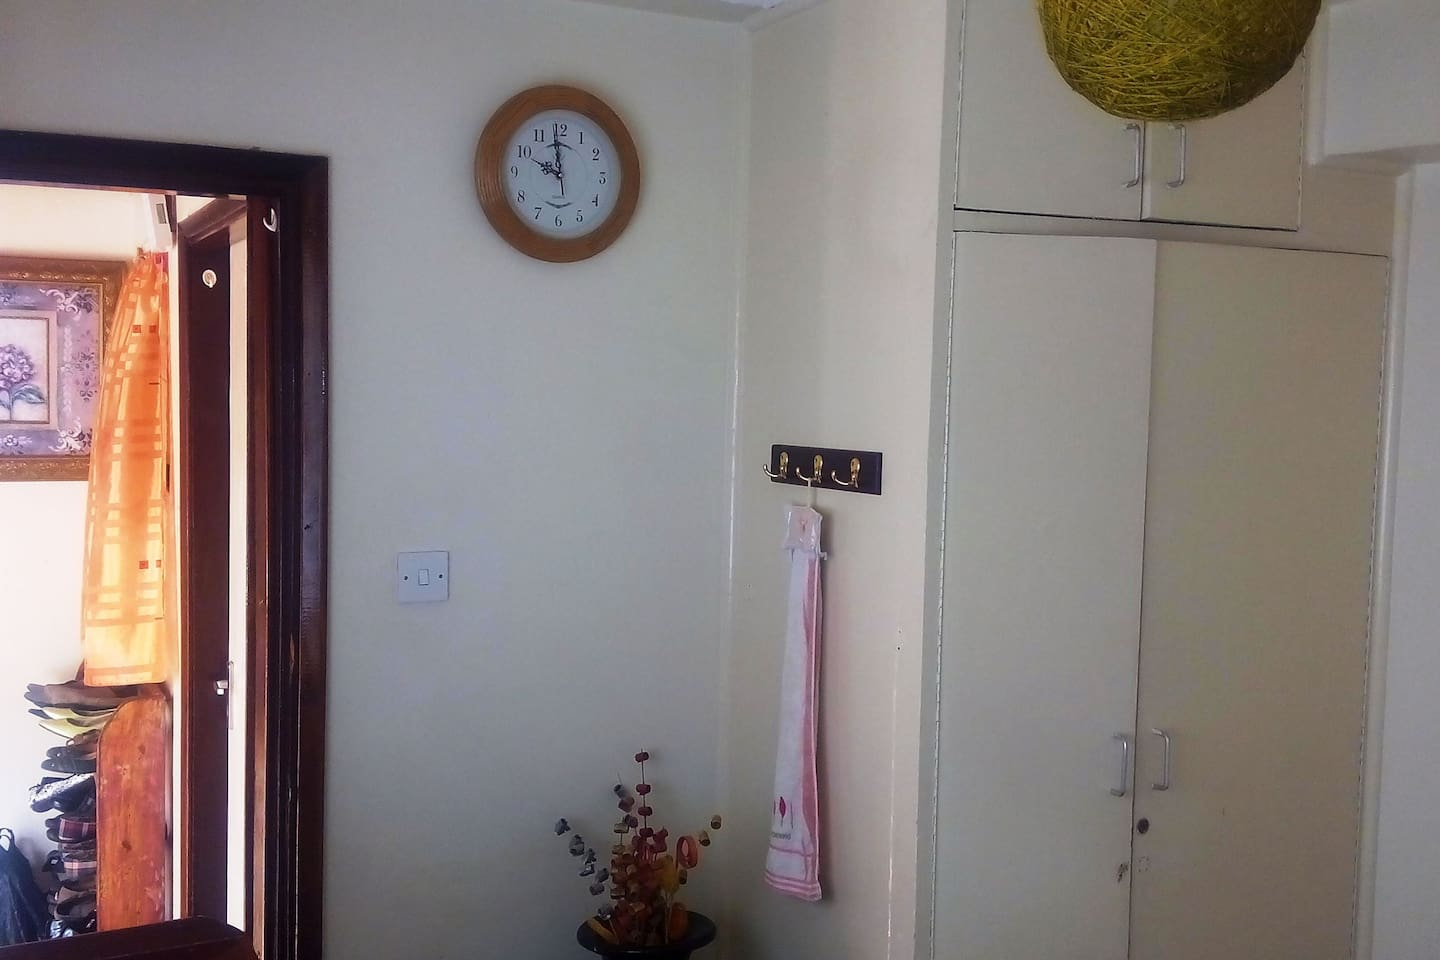 Entry to the room with clock and lockable door